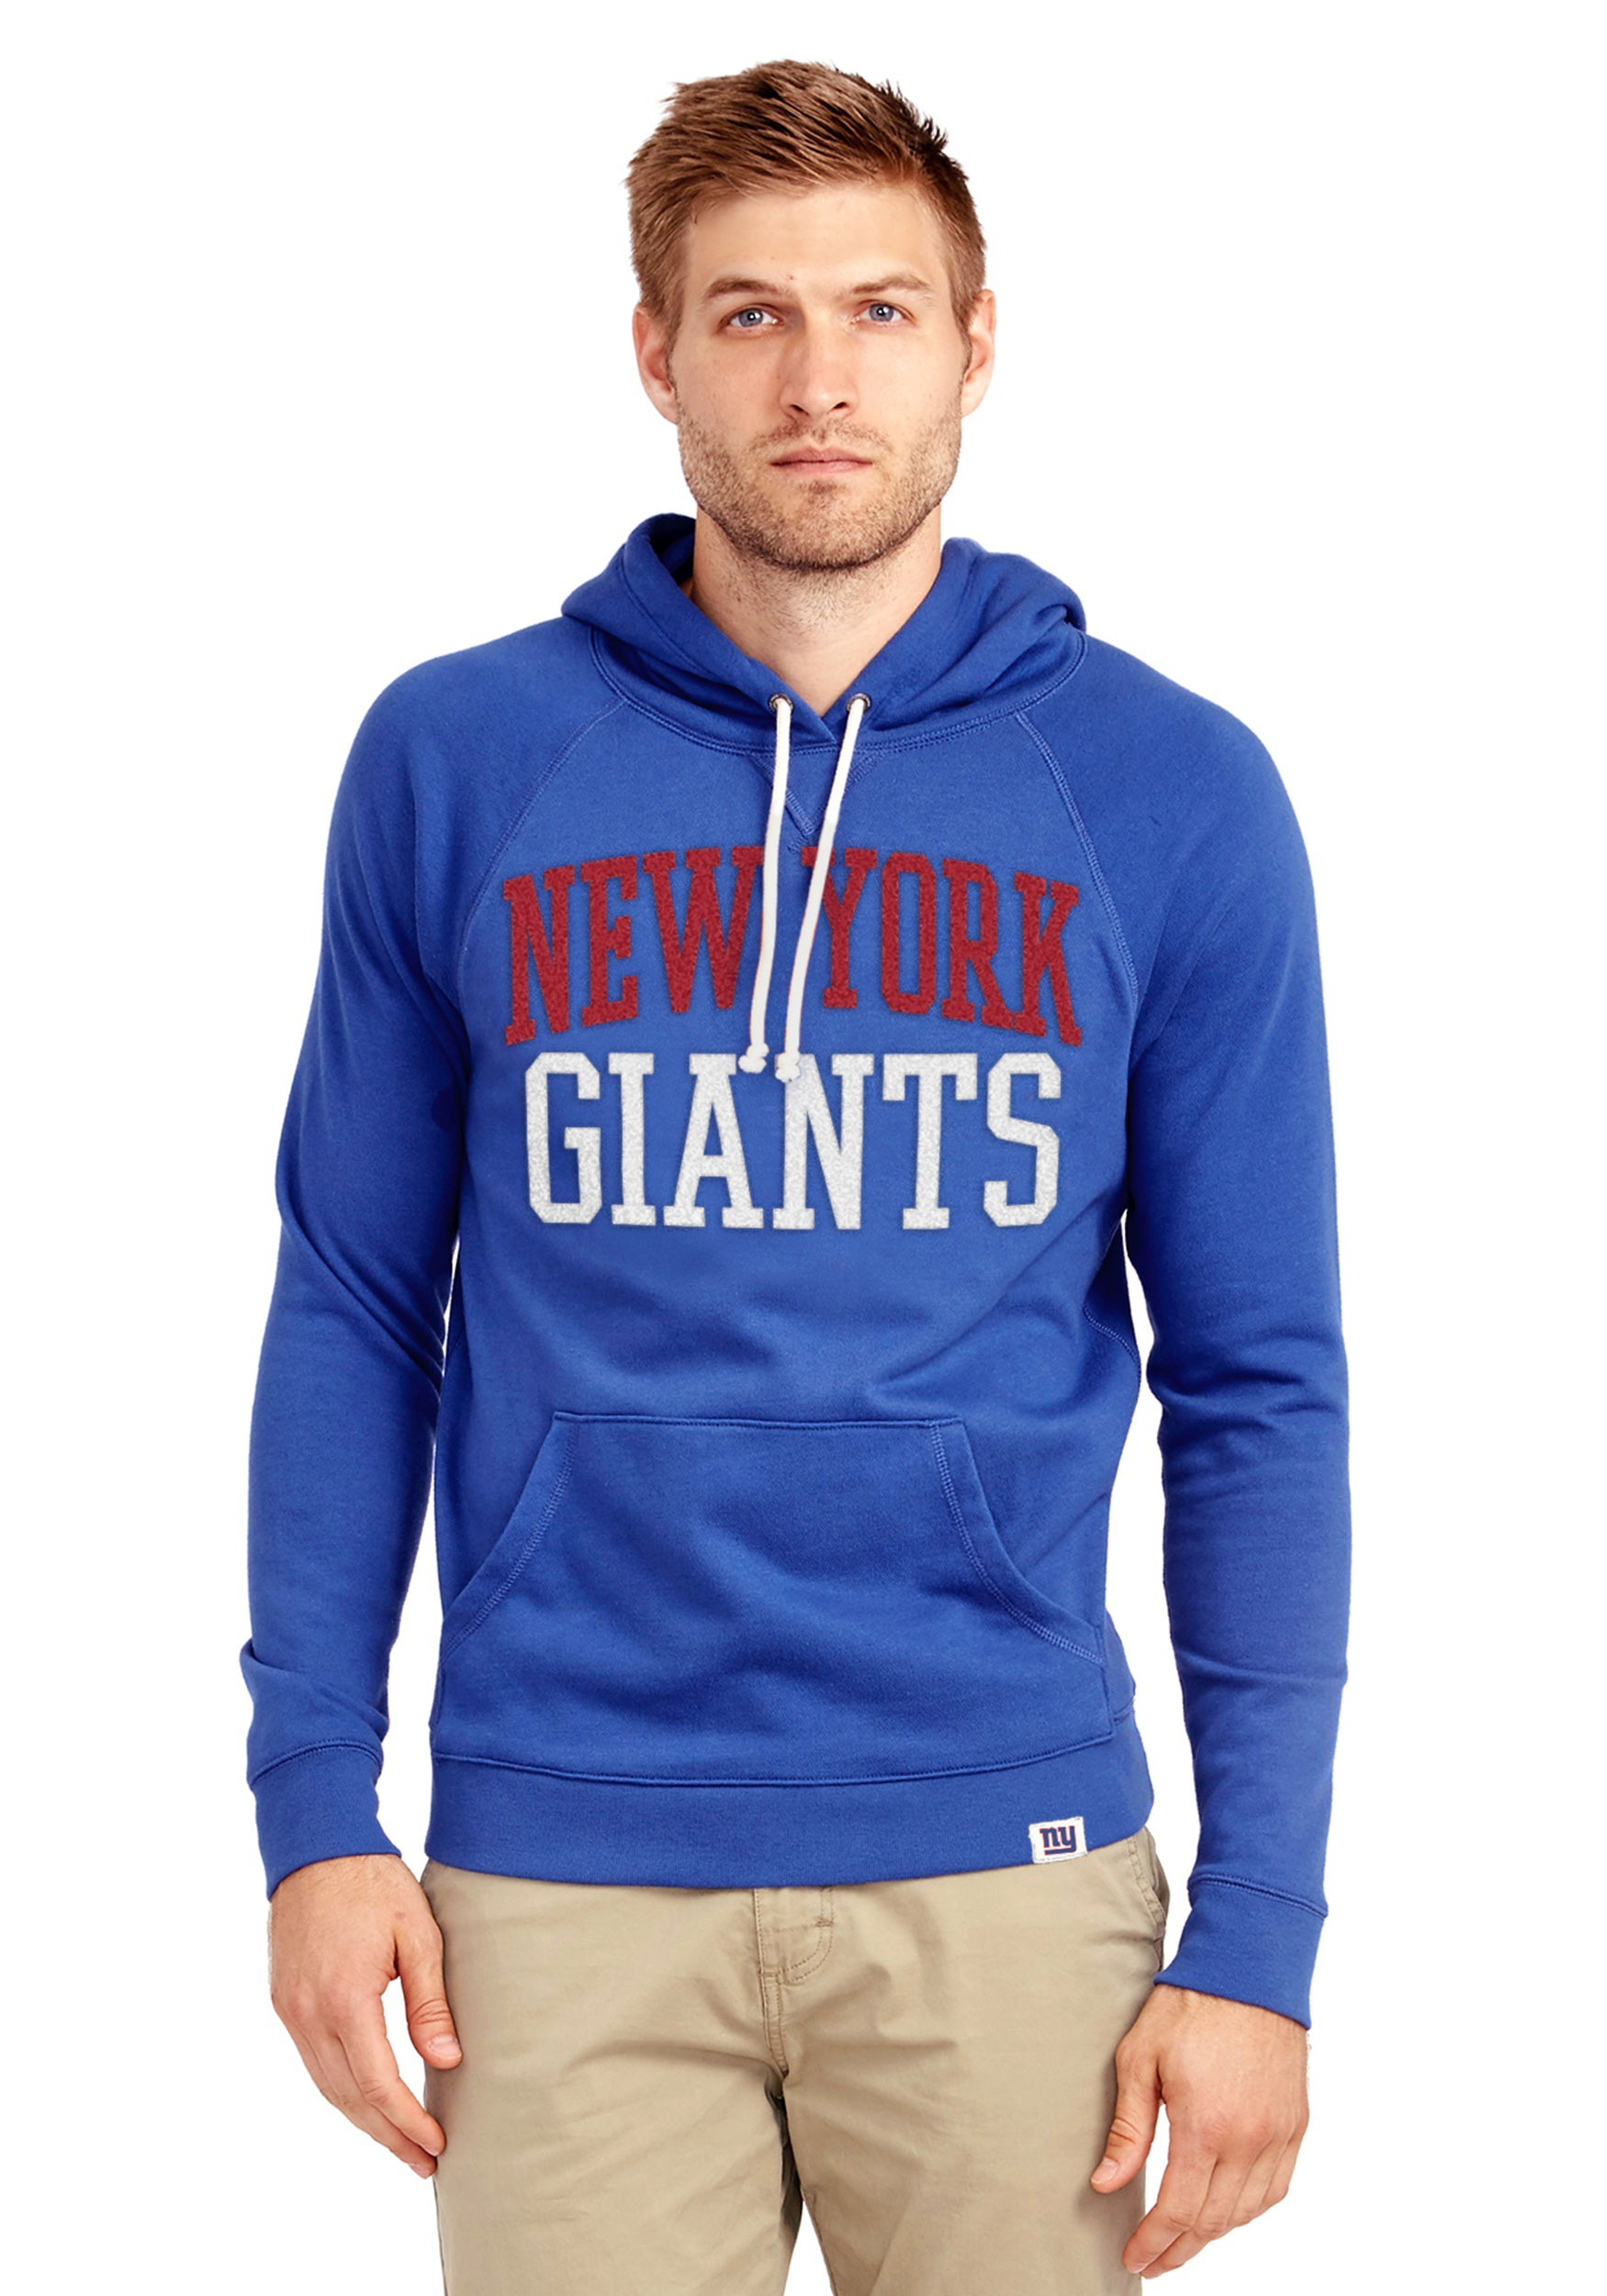 New York Giants Half Time Hoodie for Men